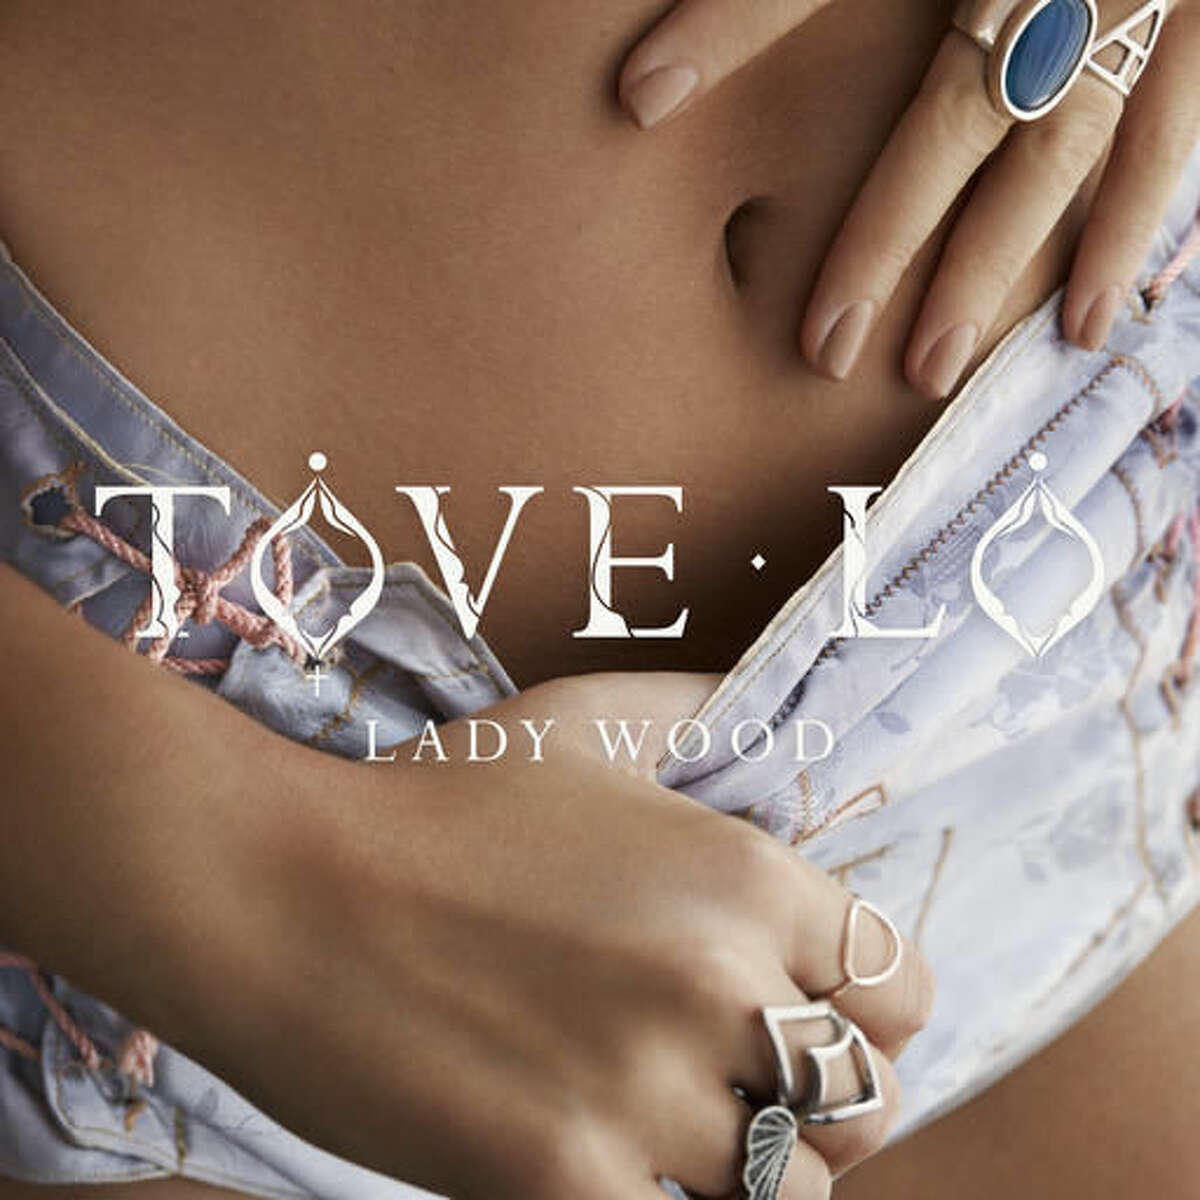 """This cover image released by Island Records shows, """"Lady Wood,"""" the latest release by Tove Lo. (Island Records via AP)"""